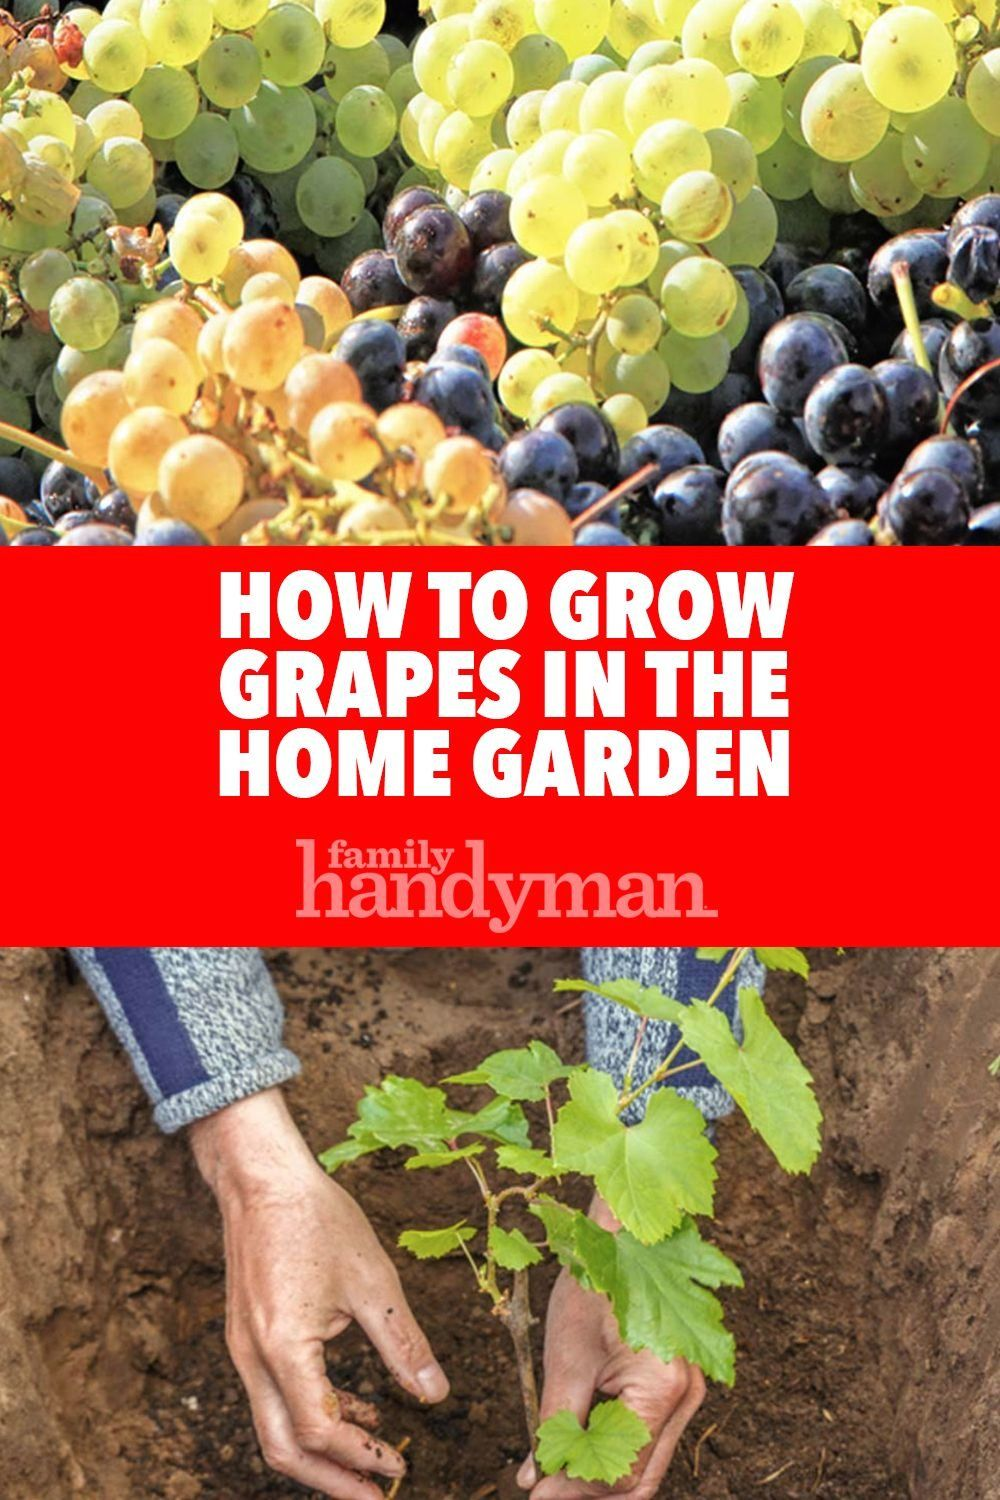 How to Grow Grapes in the Home Garden - Modern Design 4 in ...